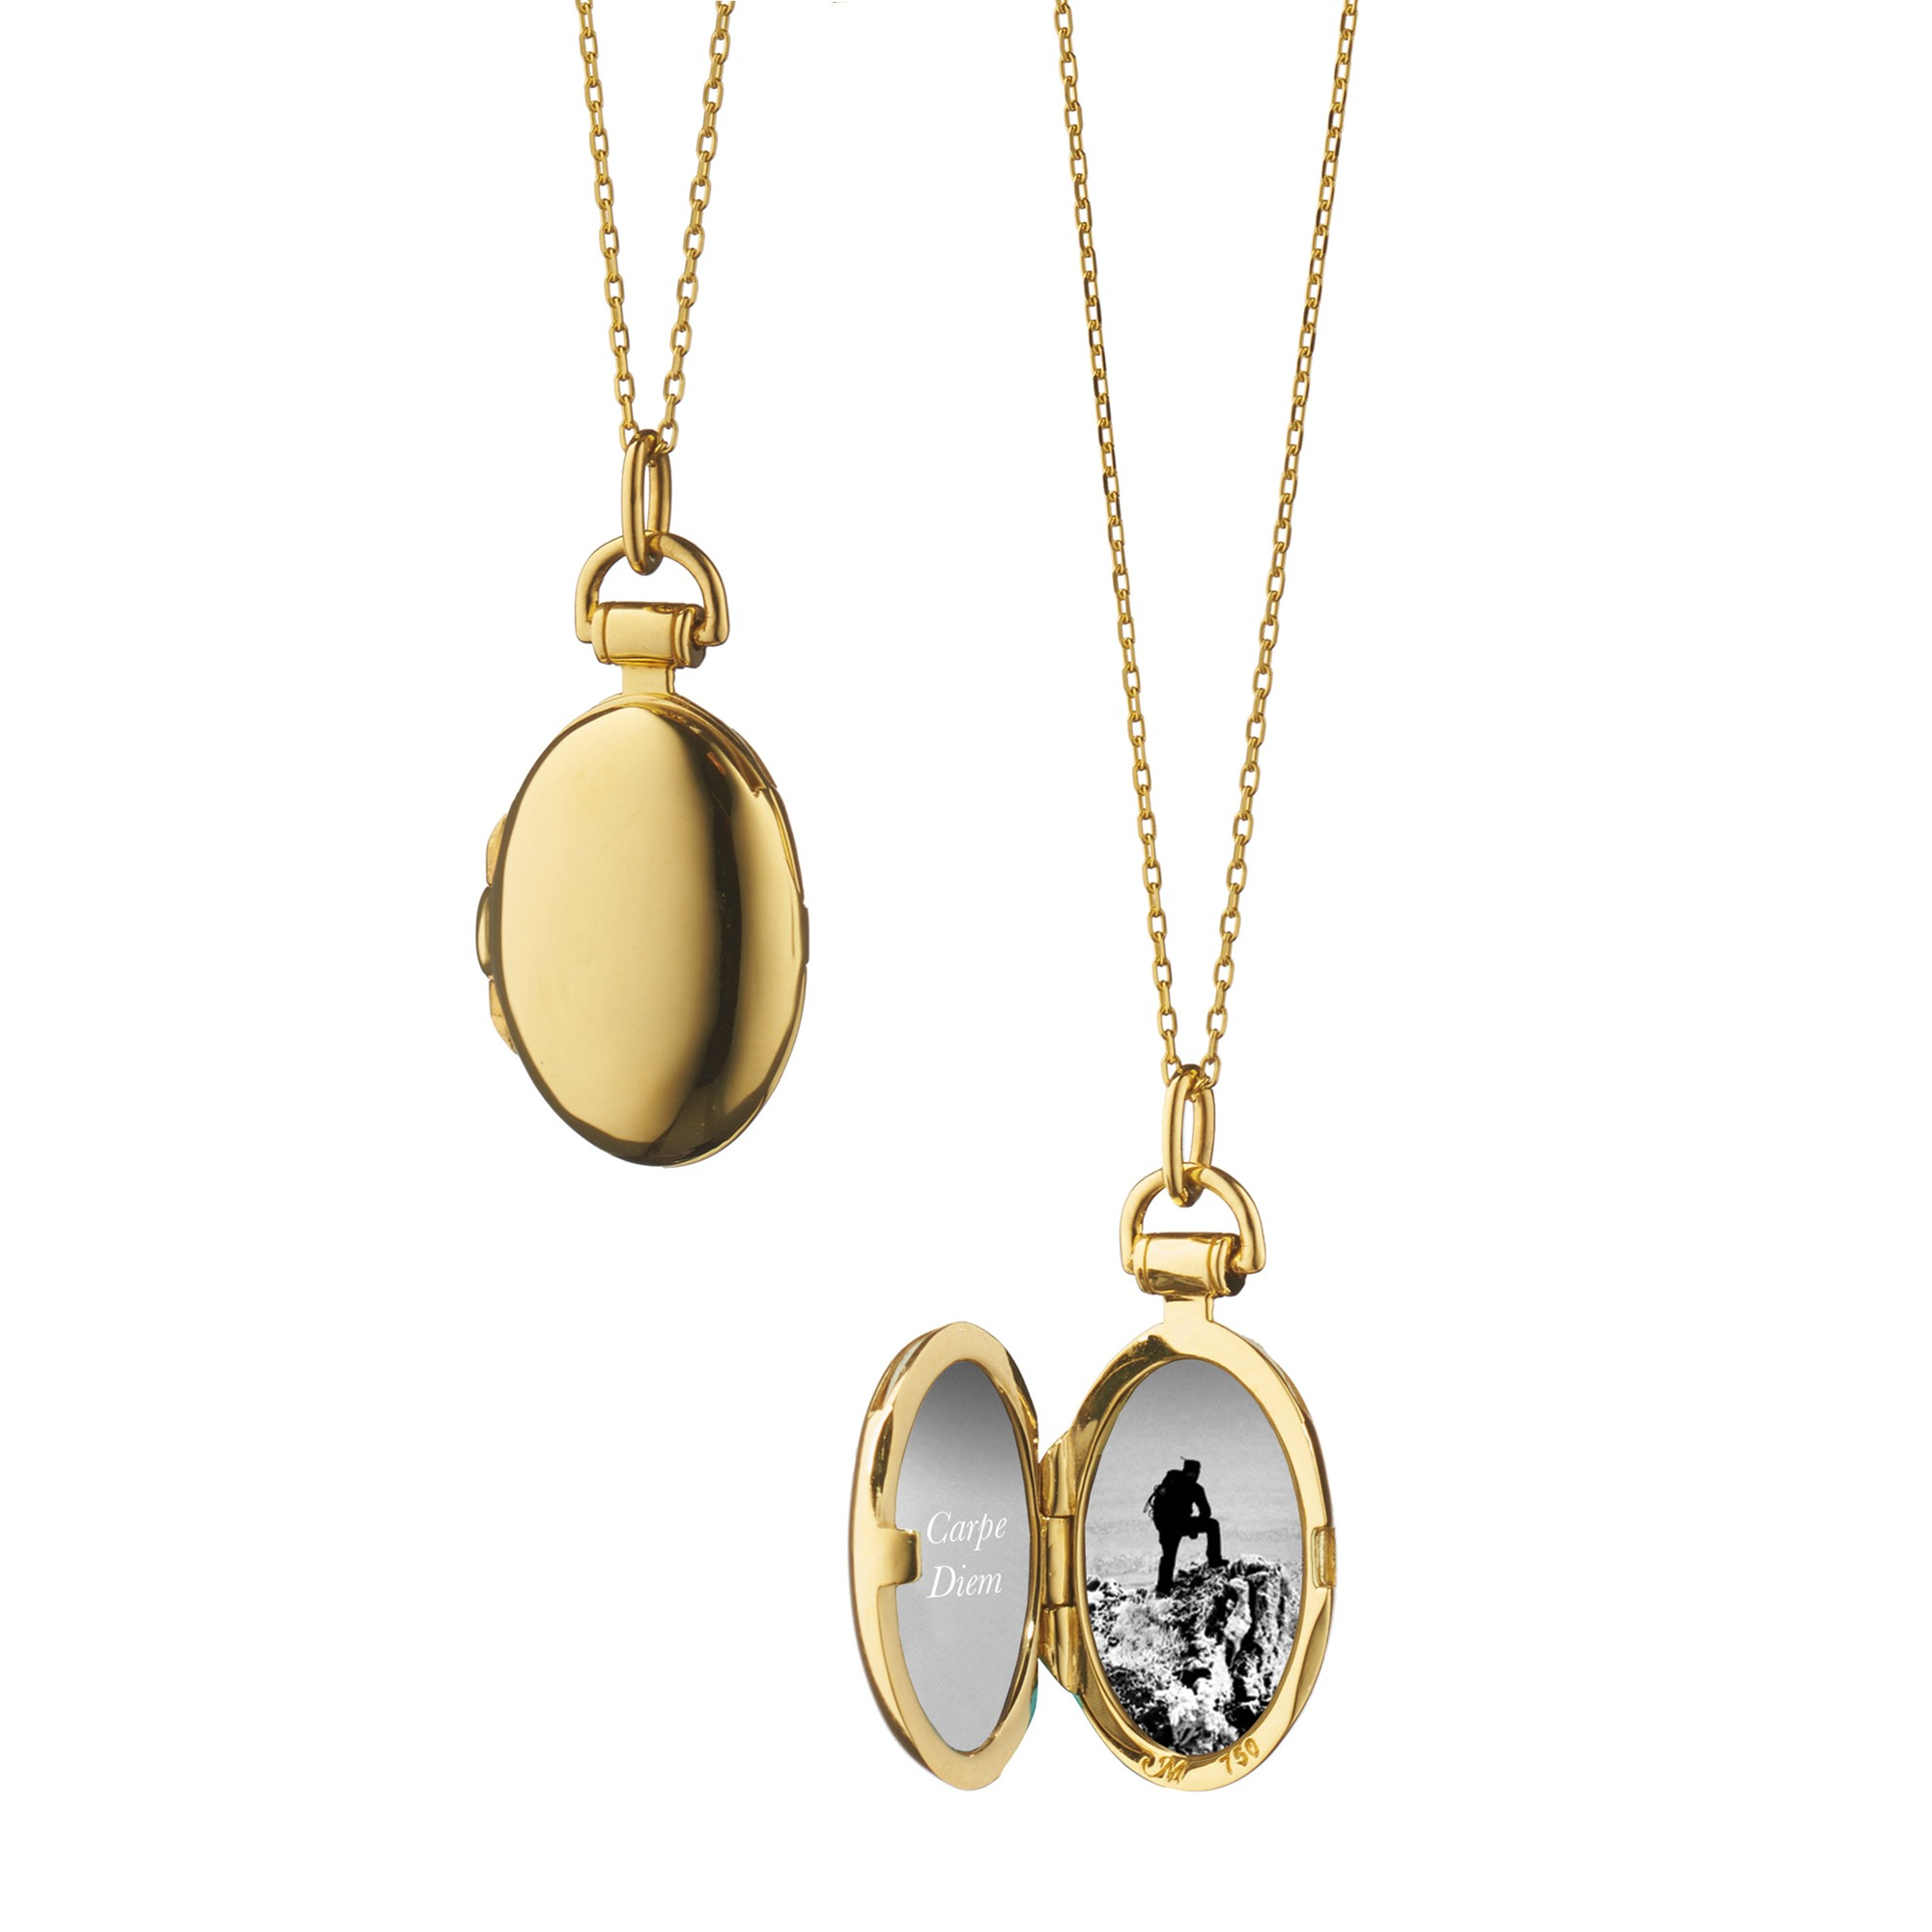 The aesthetics of a locket necklace